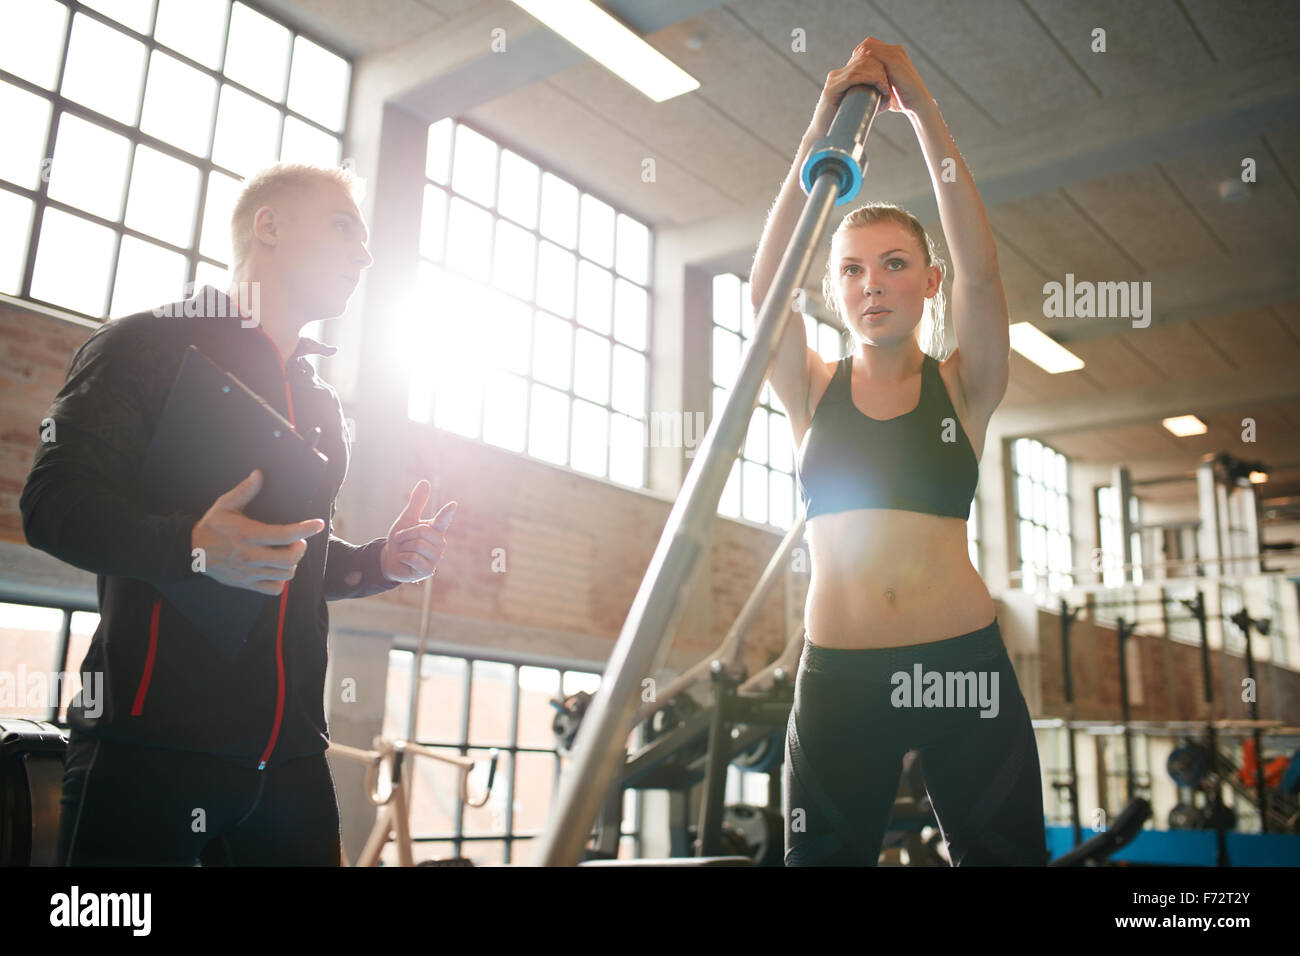 Portrait of young woman exercising with trainer at fitness center. Female working out with barbell being instructed - Stock Image